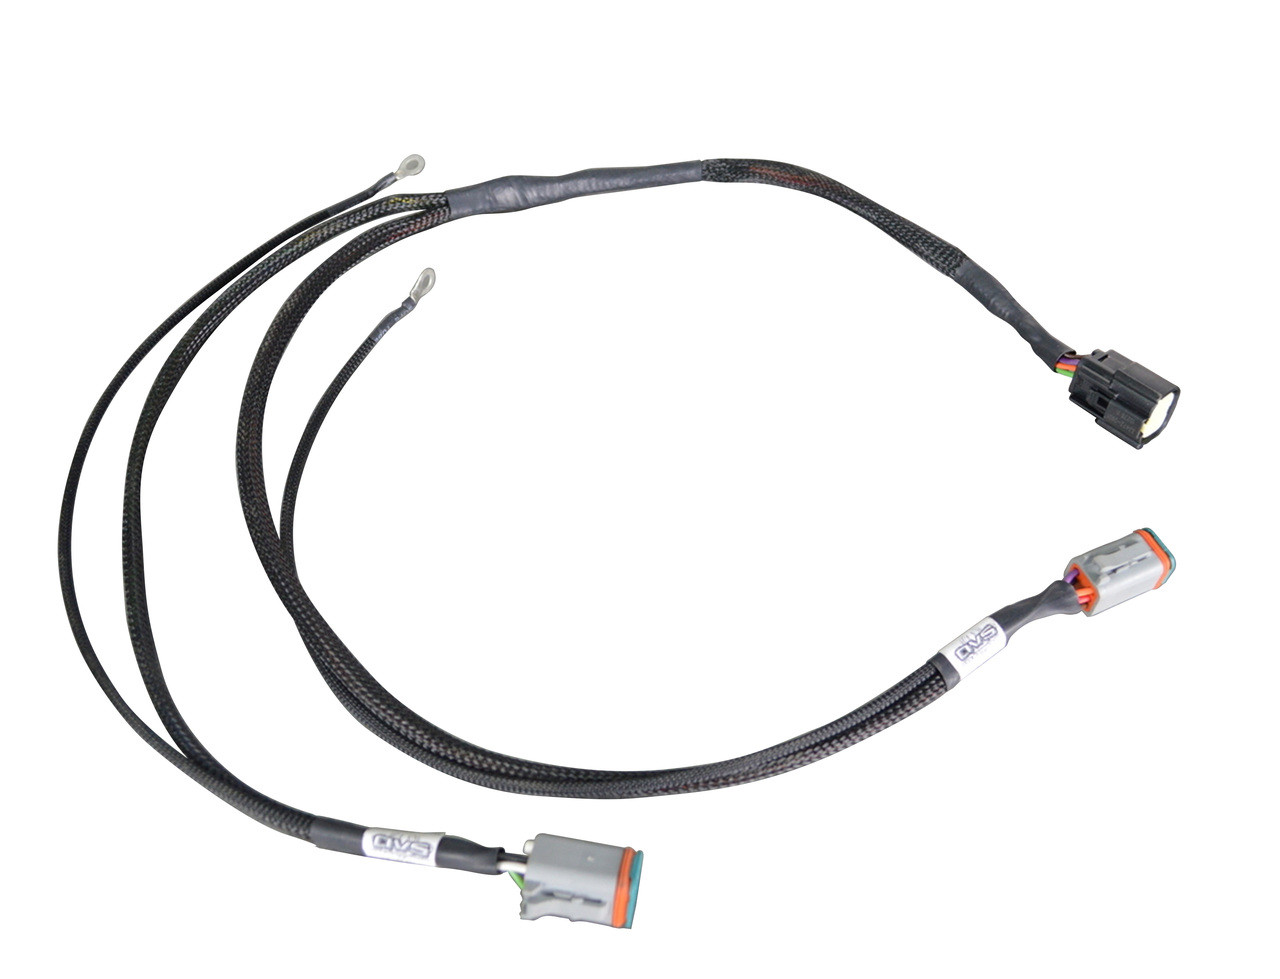 avs valve wiring harness for accuair endo vt tank to e level switchspeed Black Wire Cover